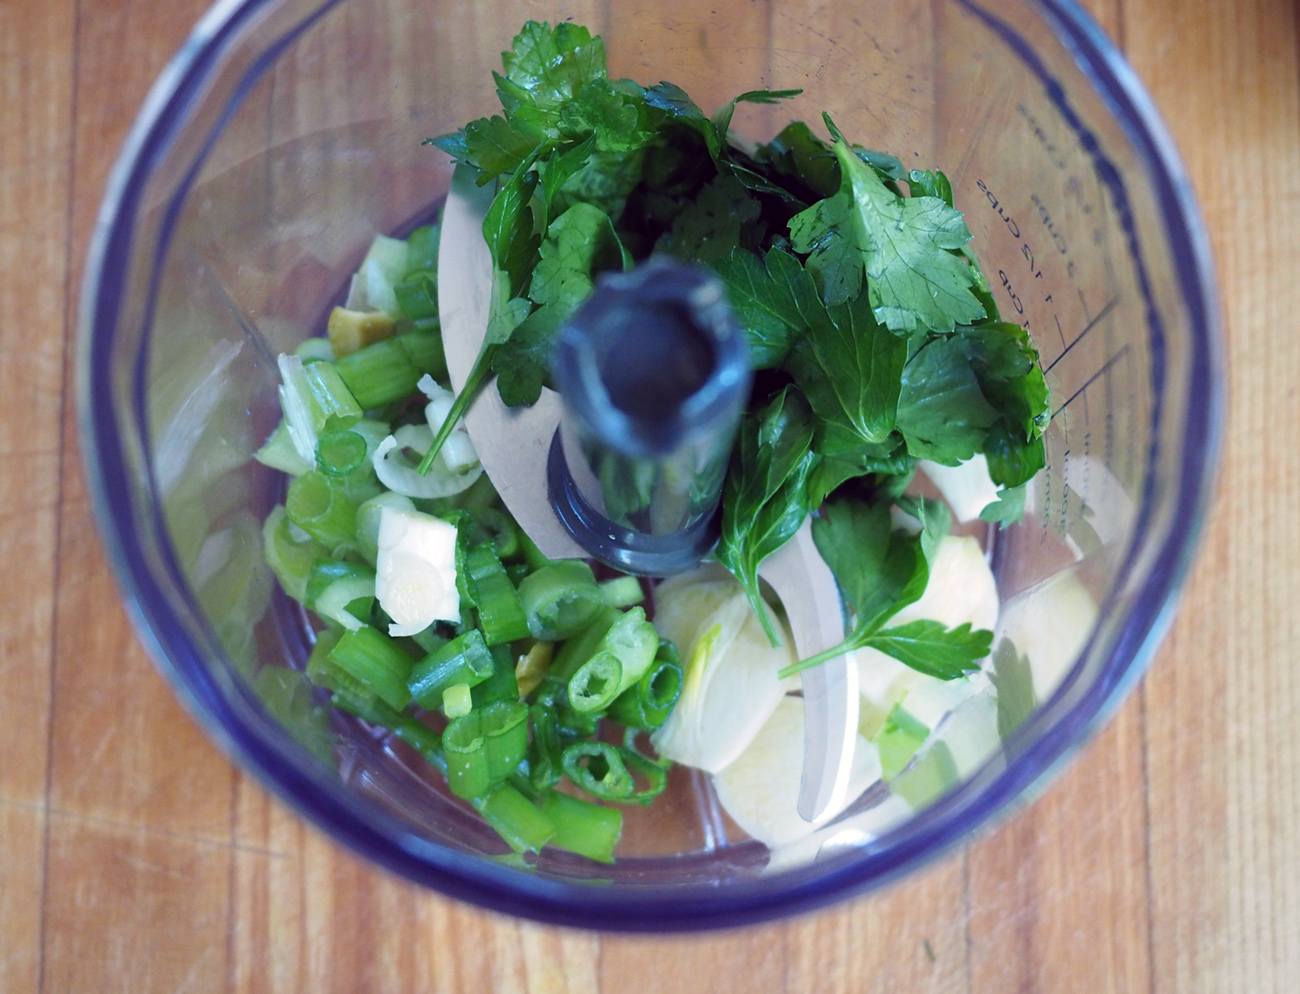 Toss the scallions, garlic and parsley in.